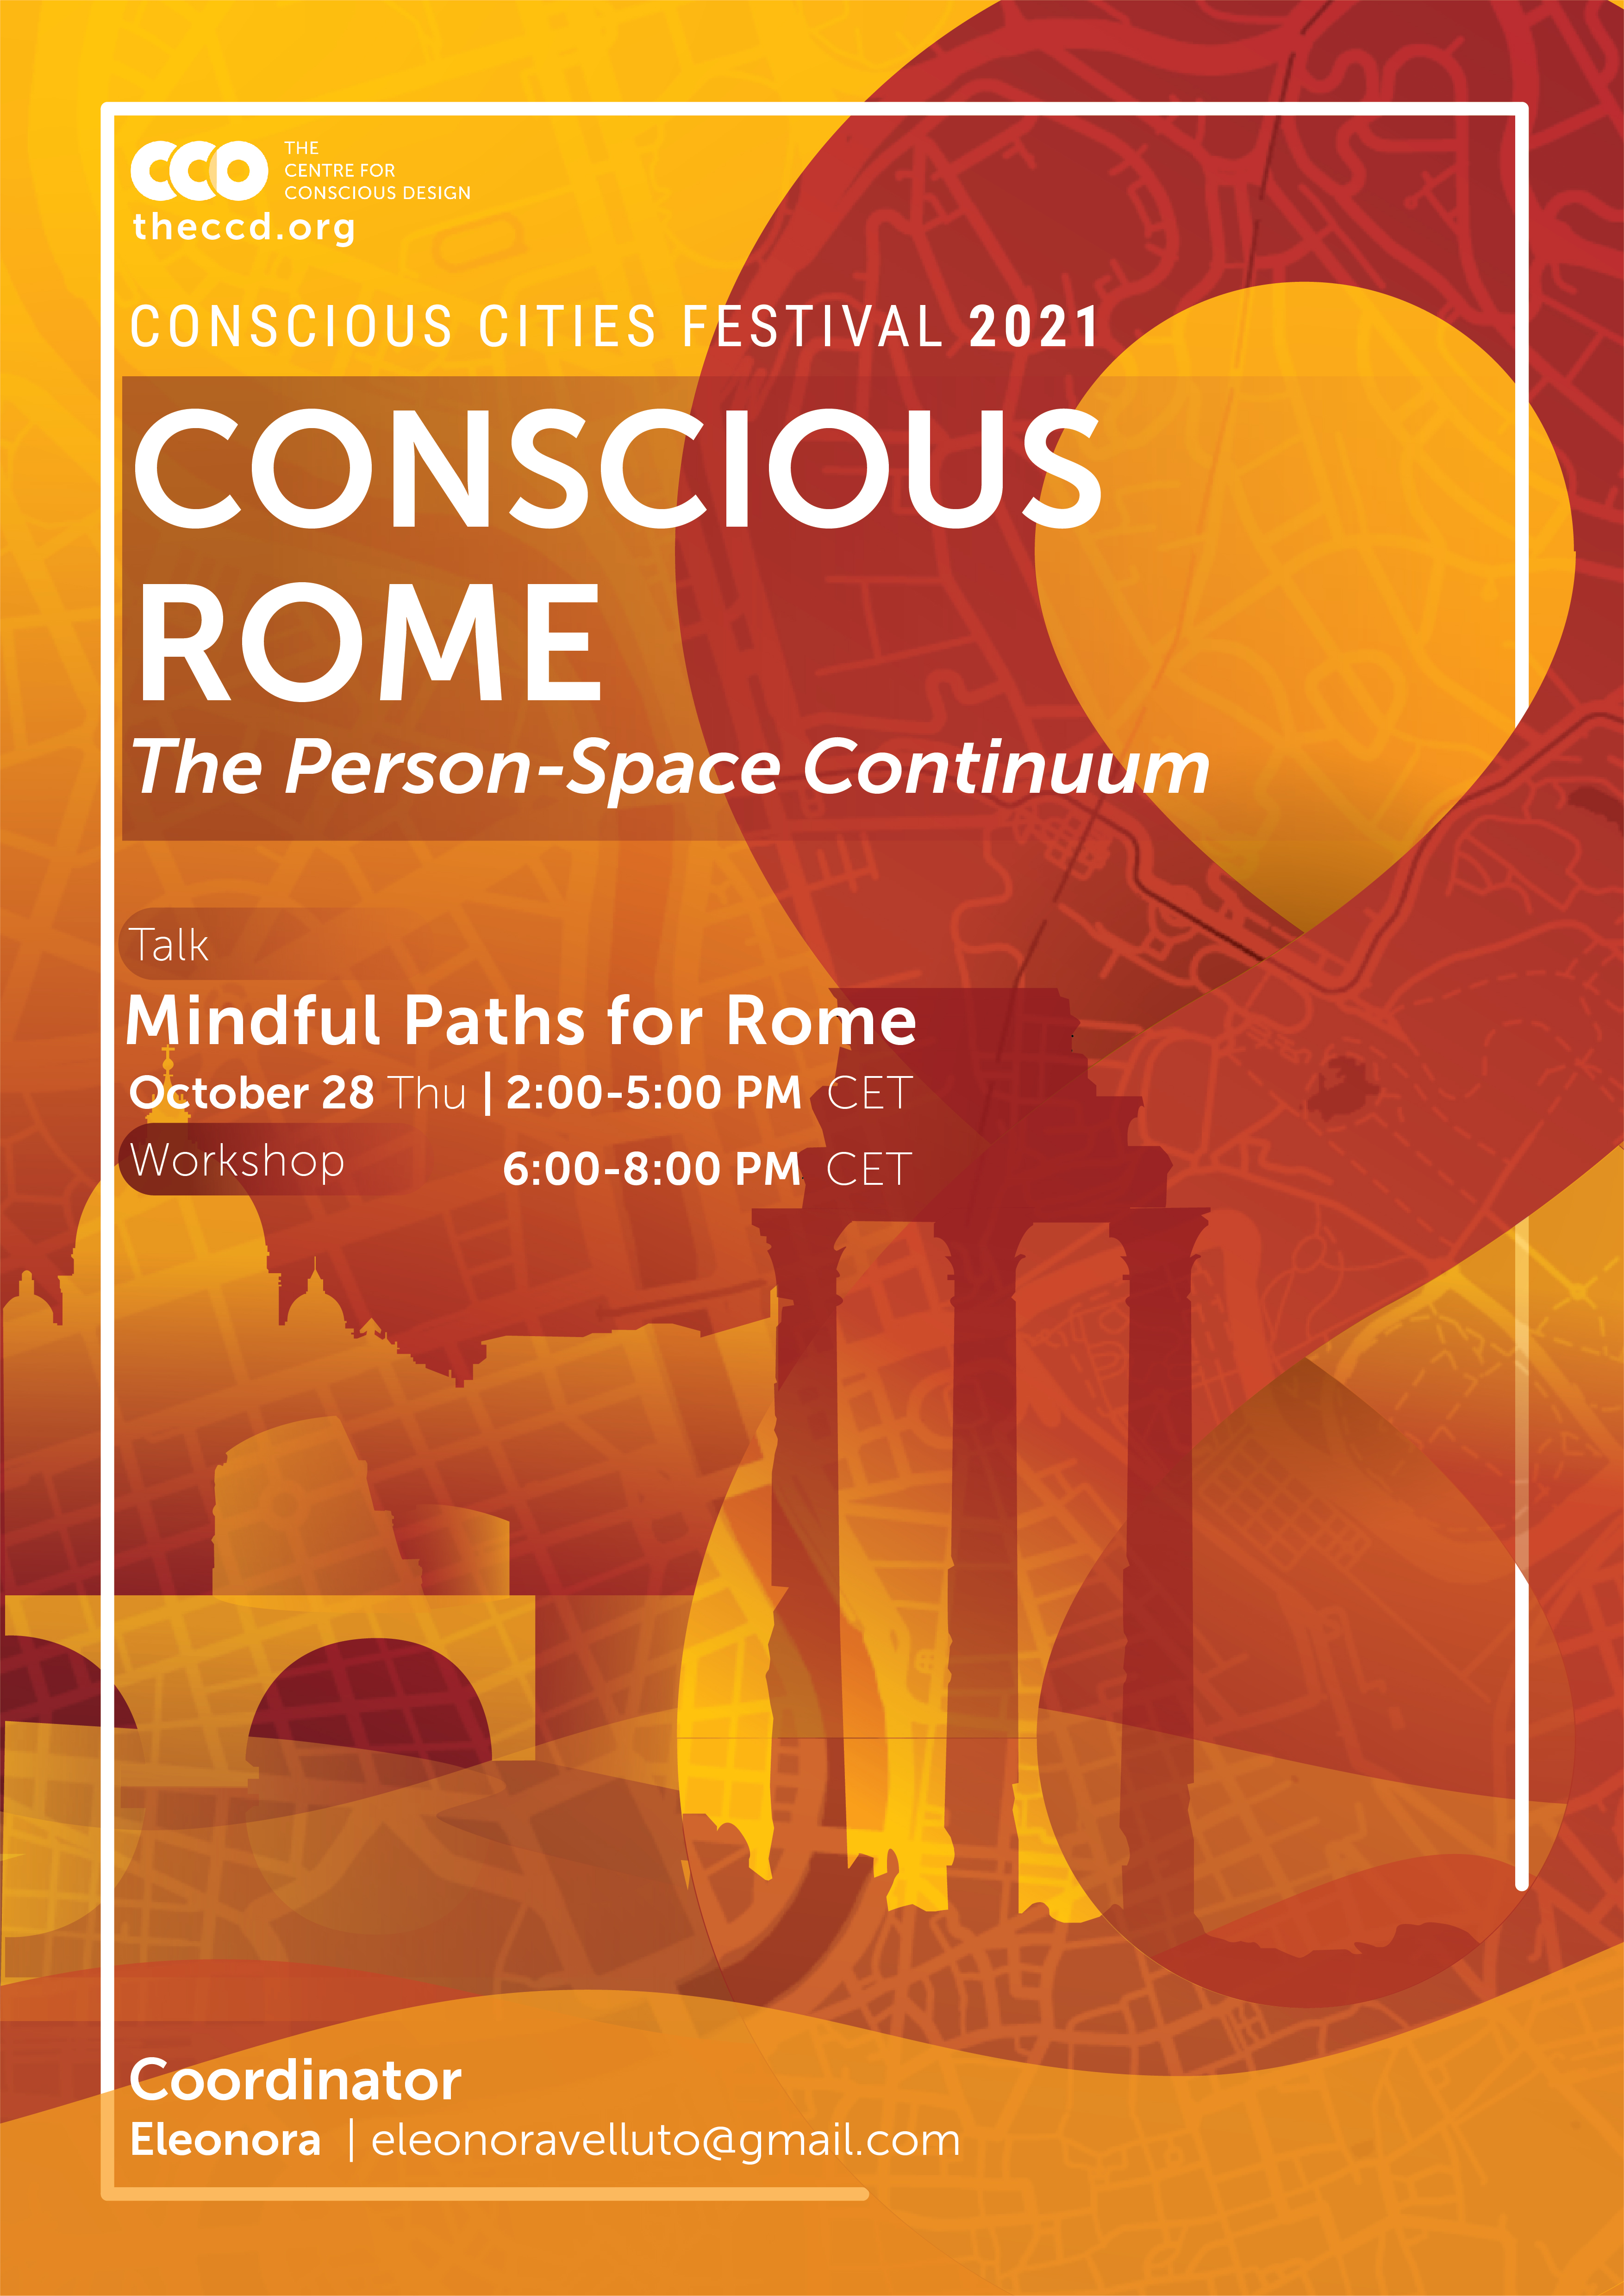 Mindful Paths for Rome featured Image